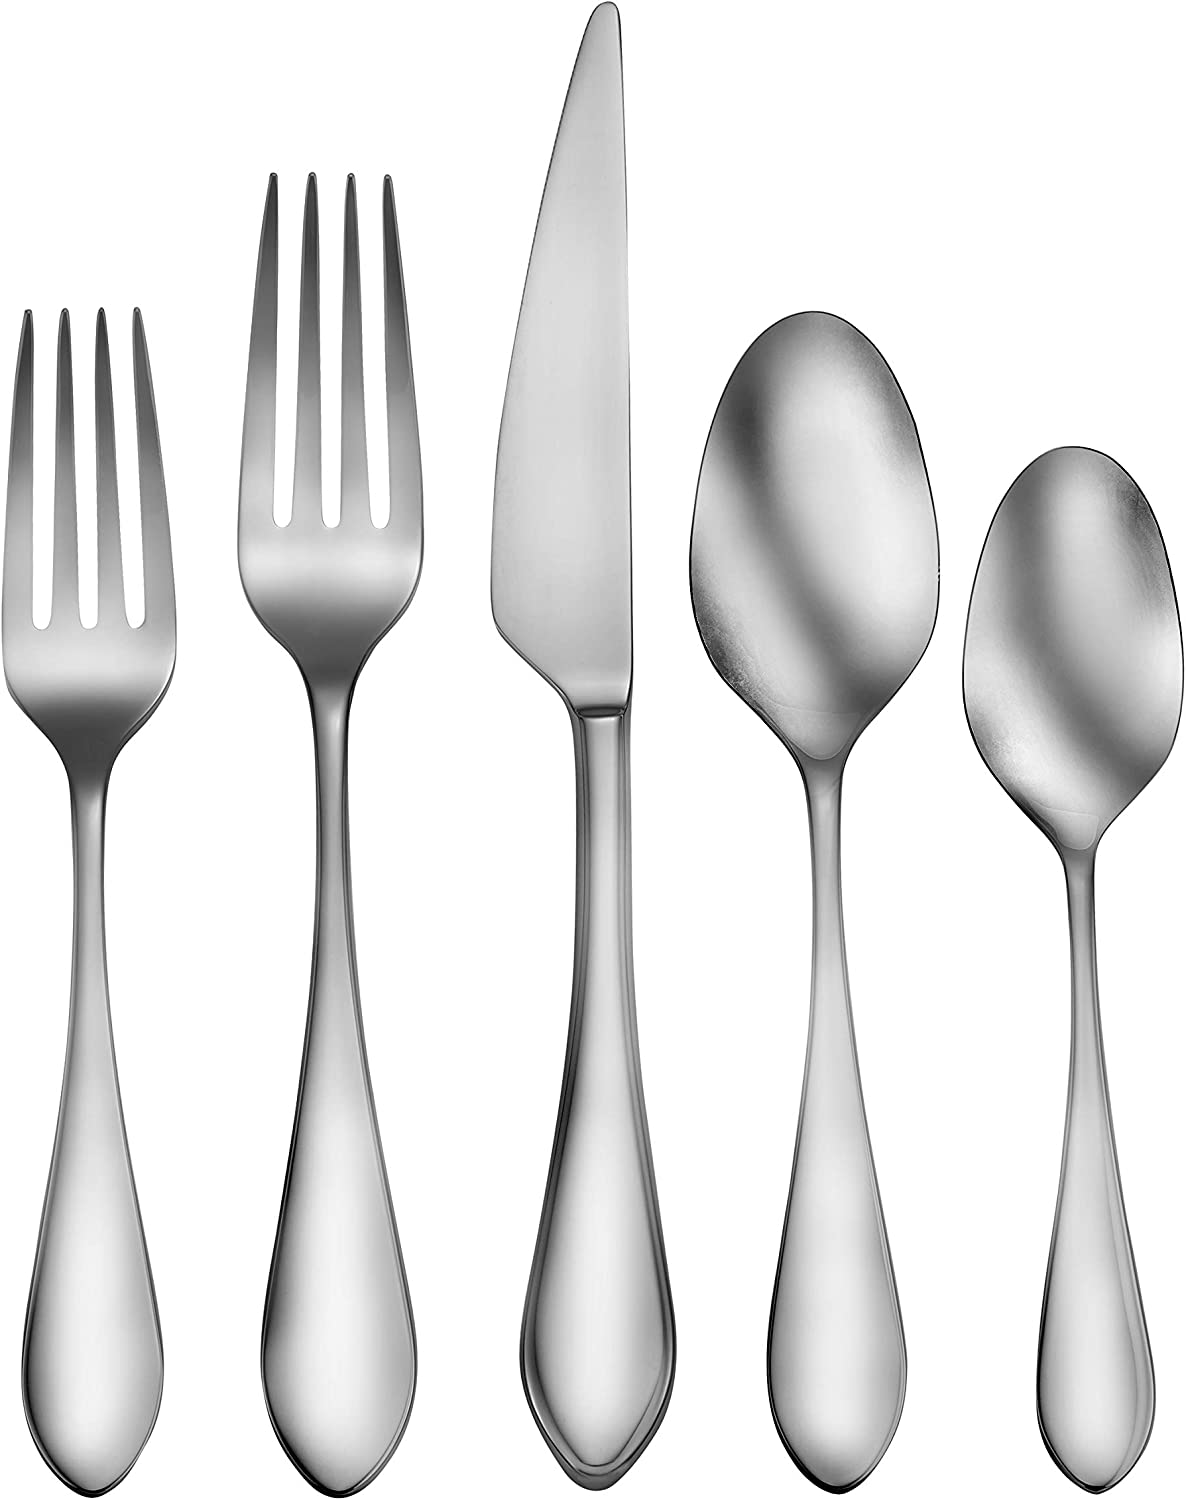 CraftKitchen Stainless Steel Flatware Sets (20 Pieces, Kailey), Service for 4